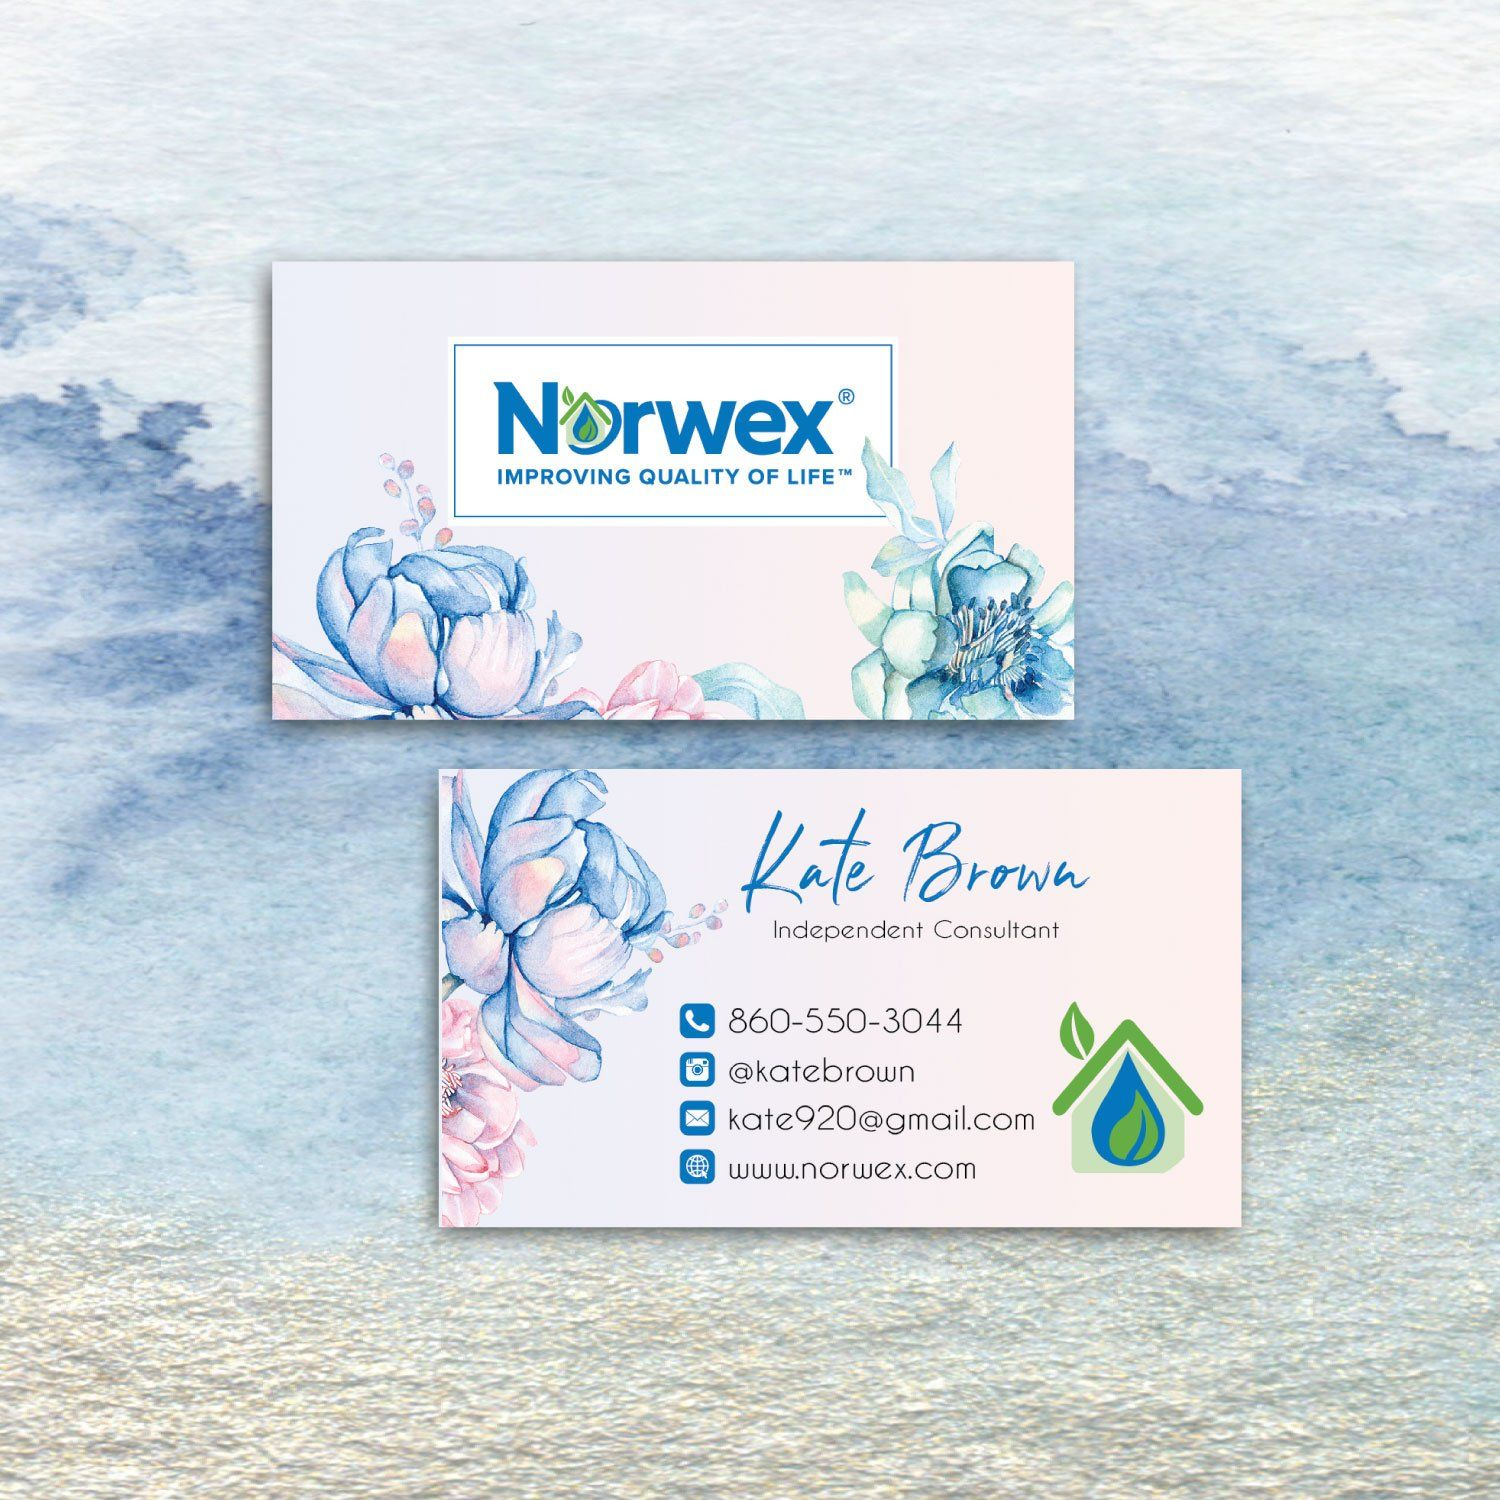 Norwex Business Cards Personalized Norwex Template Nw08 Cleaning Business Cards Arbonne Business Cards Norwex